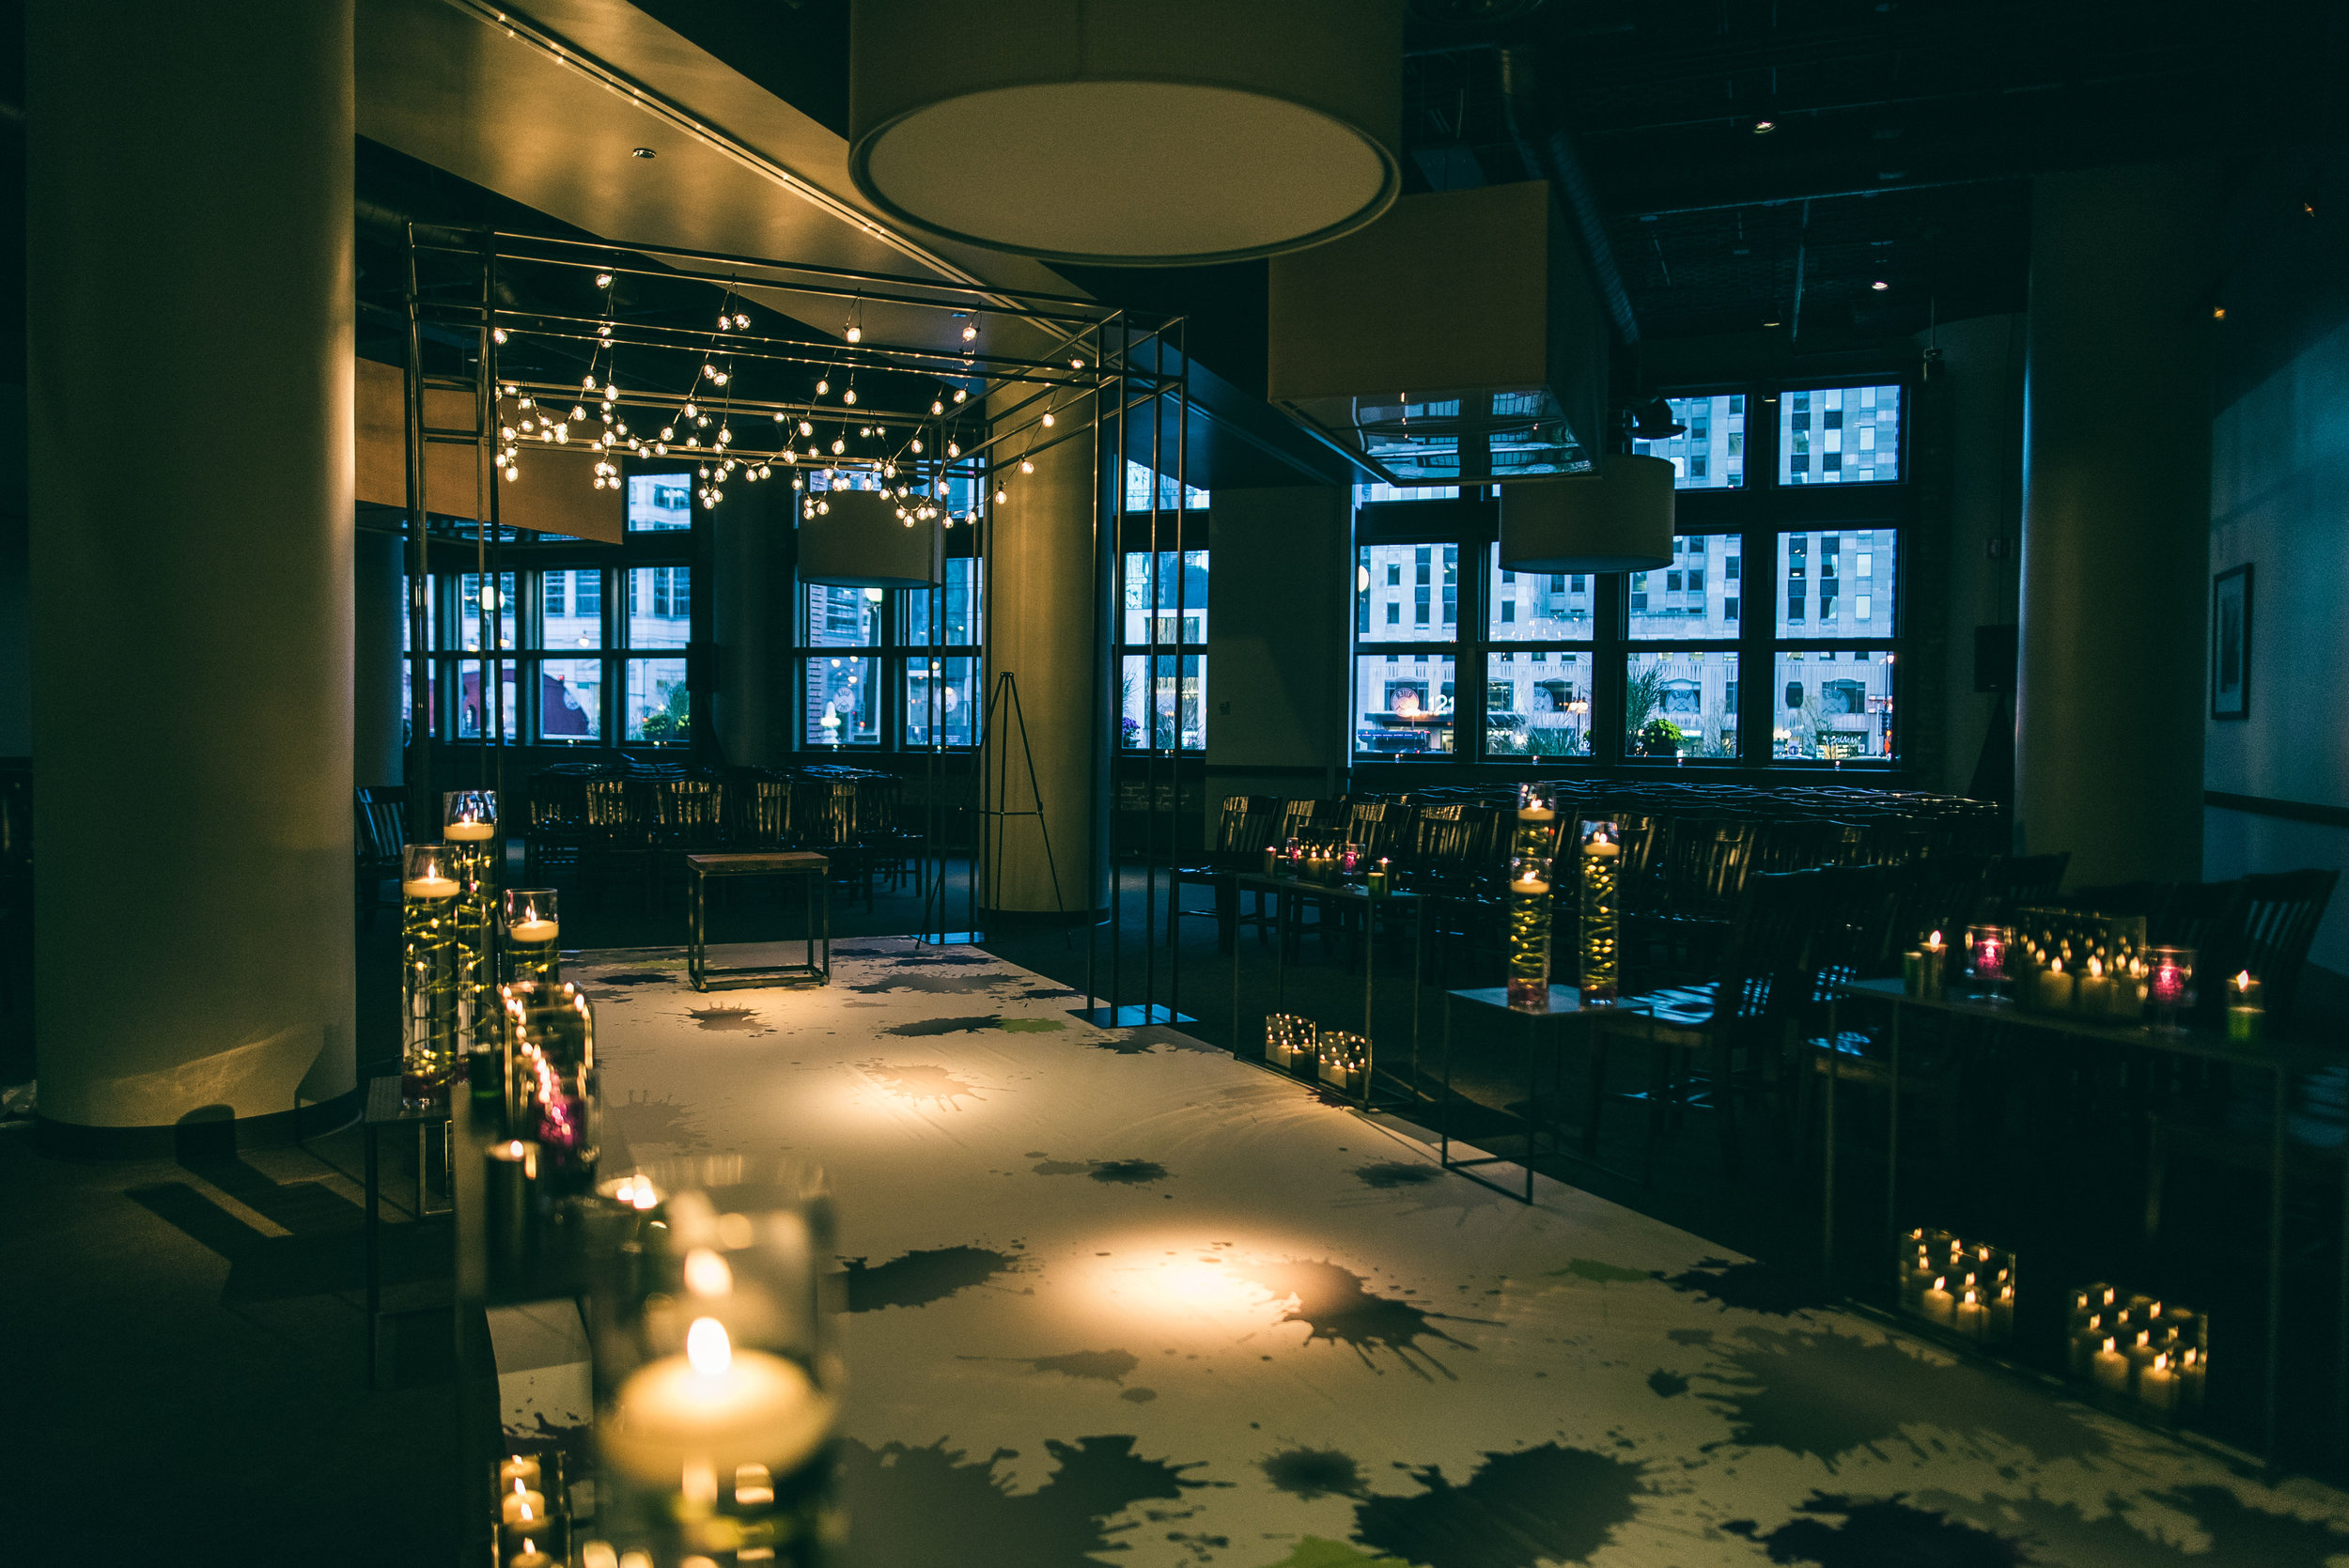 Jewish wedding ceremony at River Roast Social House in Chicago